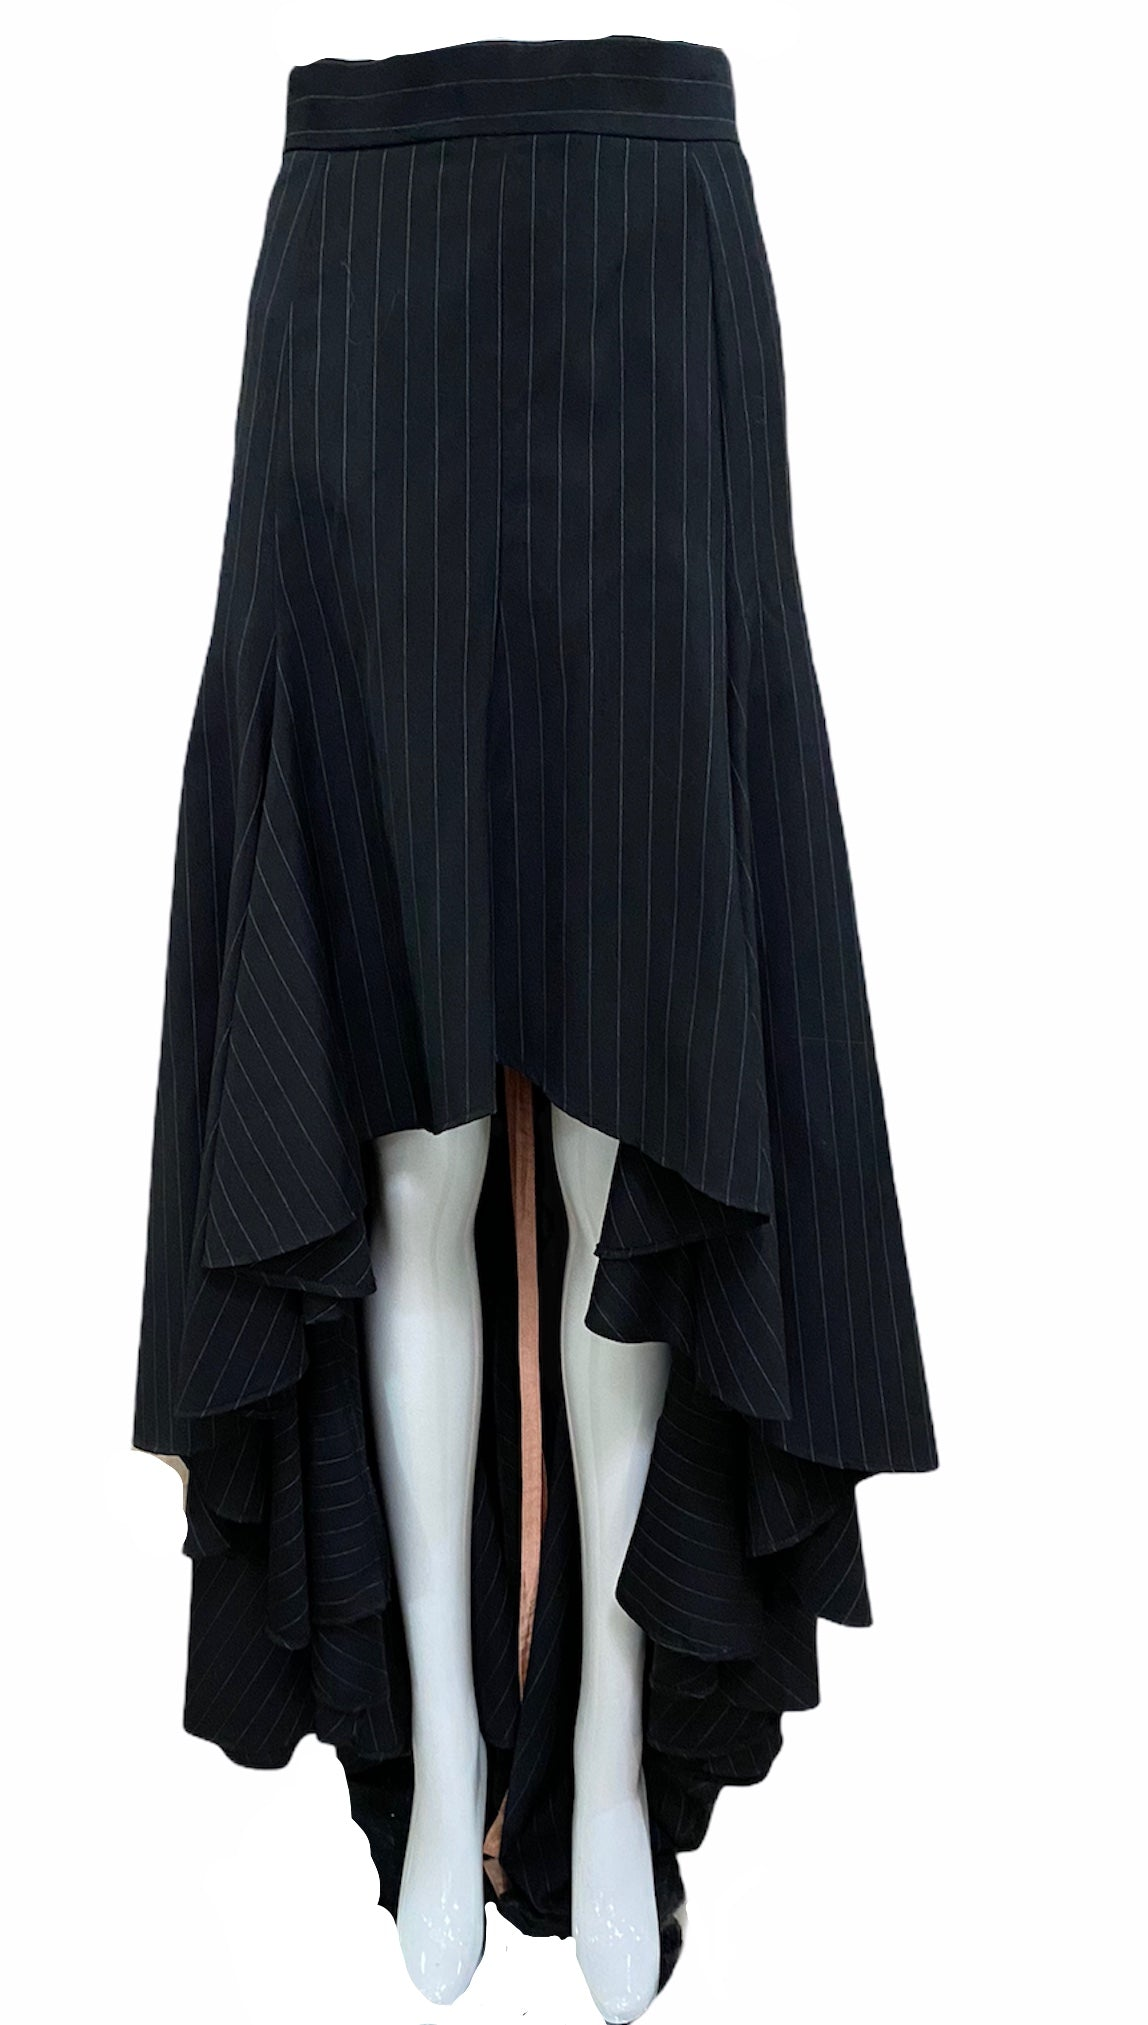 Vivienne Westwood 90s Black Pinstripe Equestrian Ensemble FRONT OF SKIRT 4 of 6